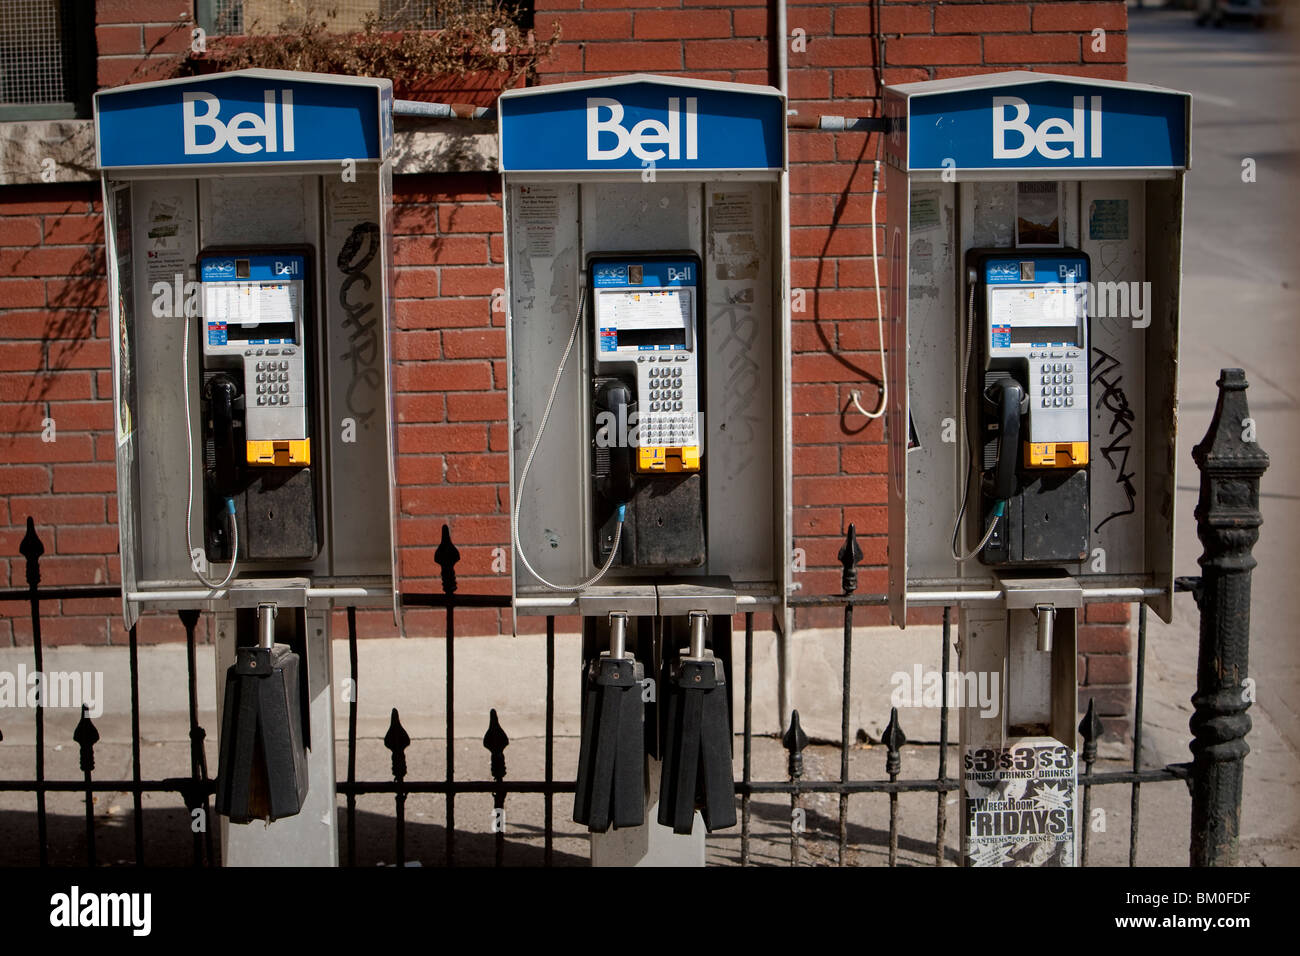 Bell payphone booths are seen in downtown Toronto - Stock Image